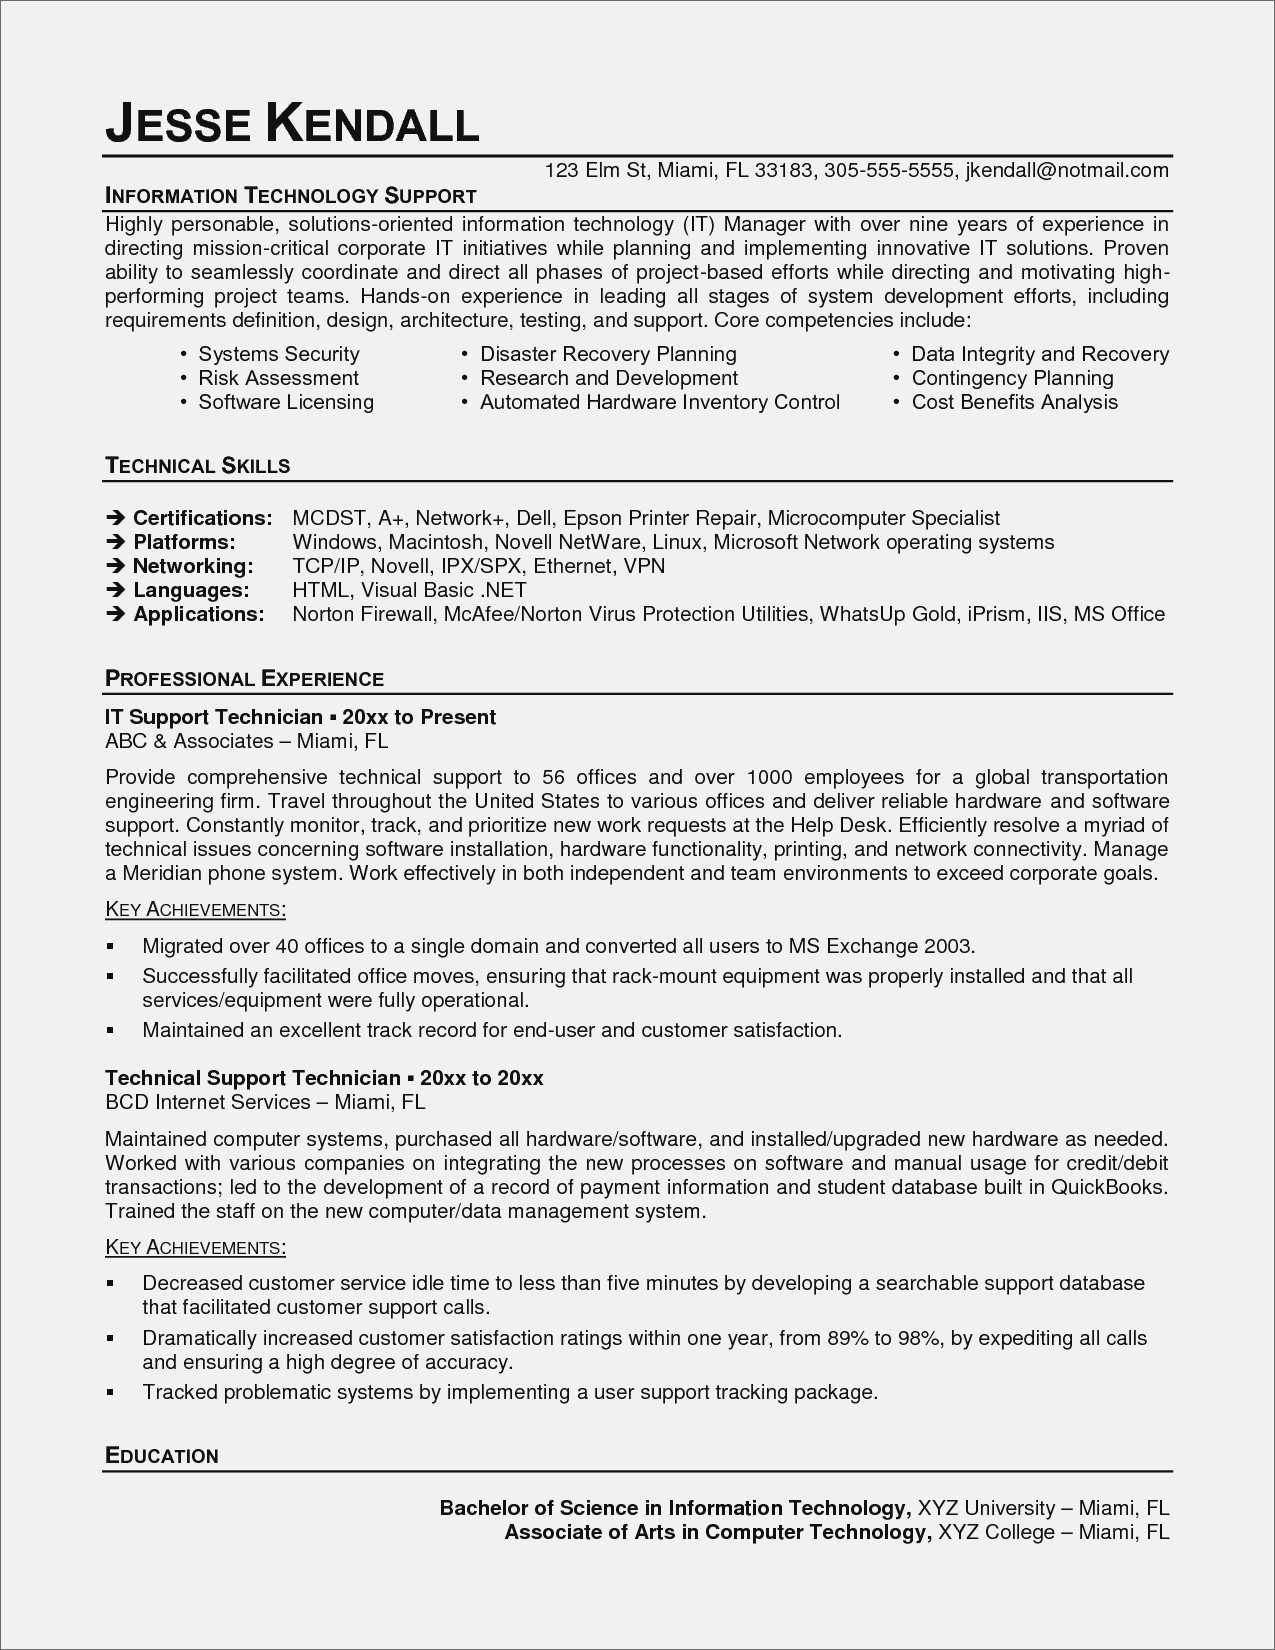 automotive resume template example-Auto Mechanic Resume American Resume Sample New Student Resume 0d 16-b